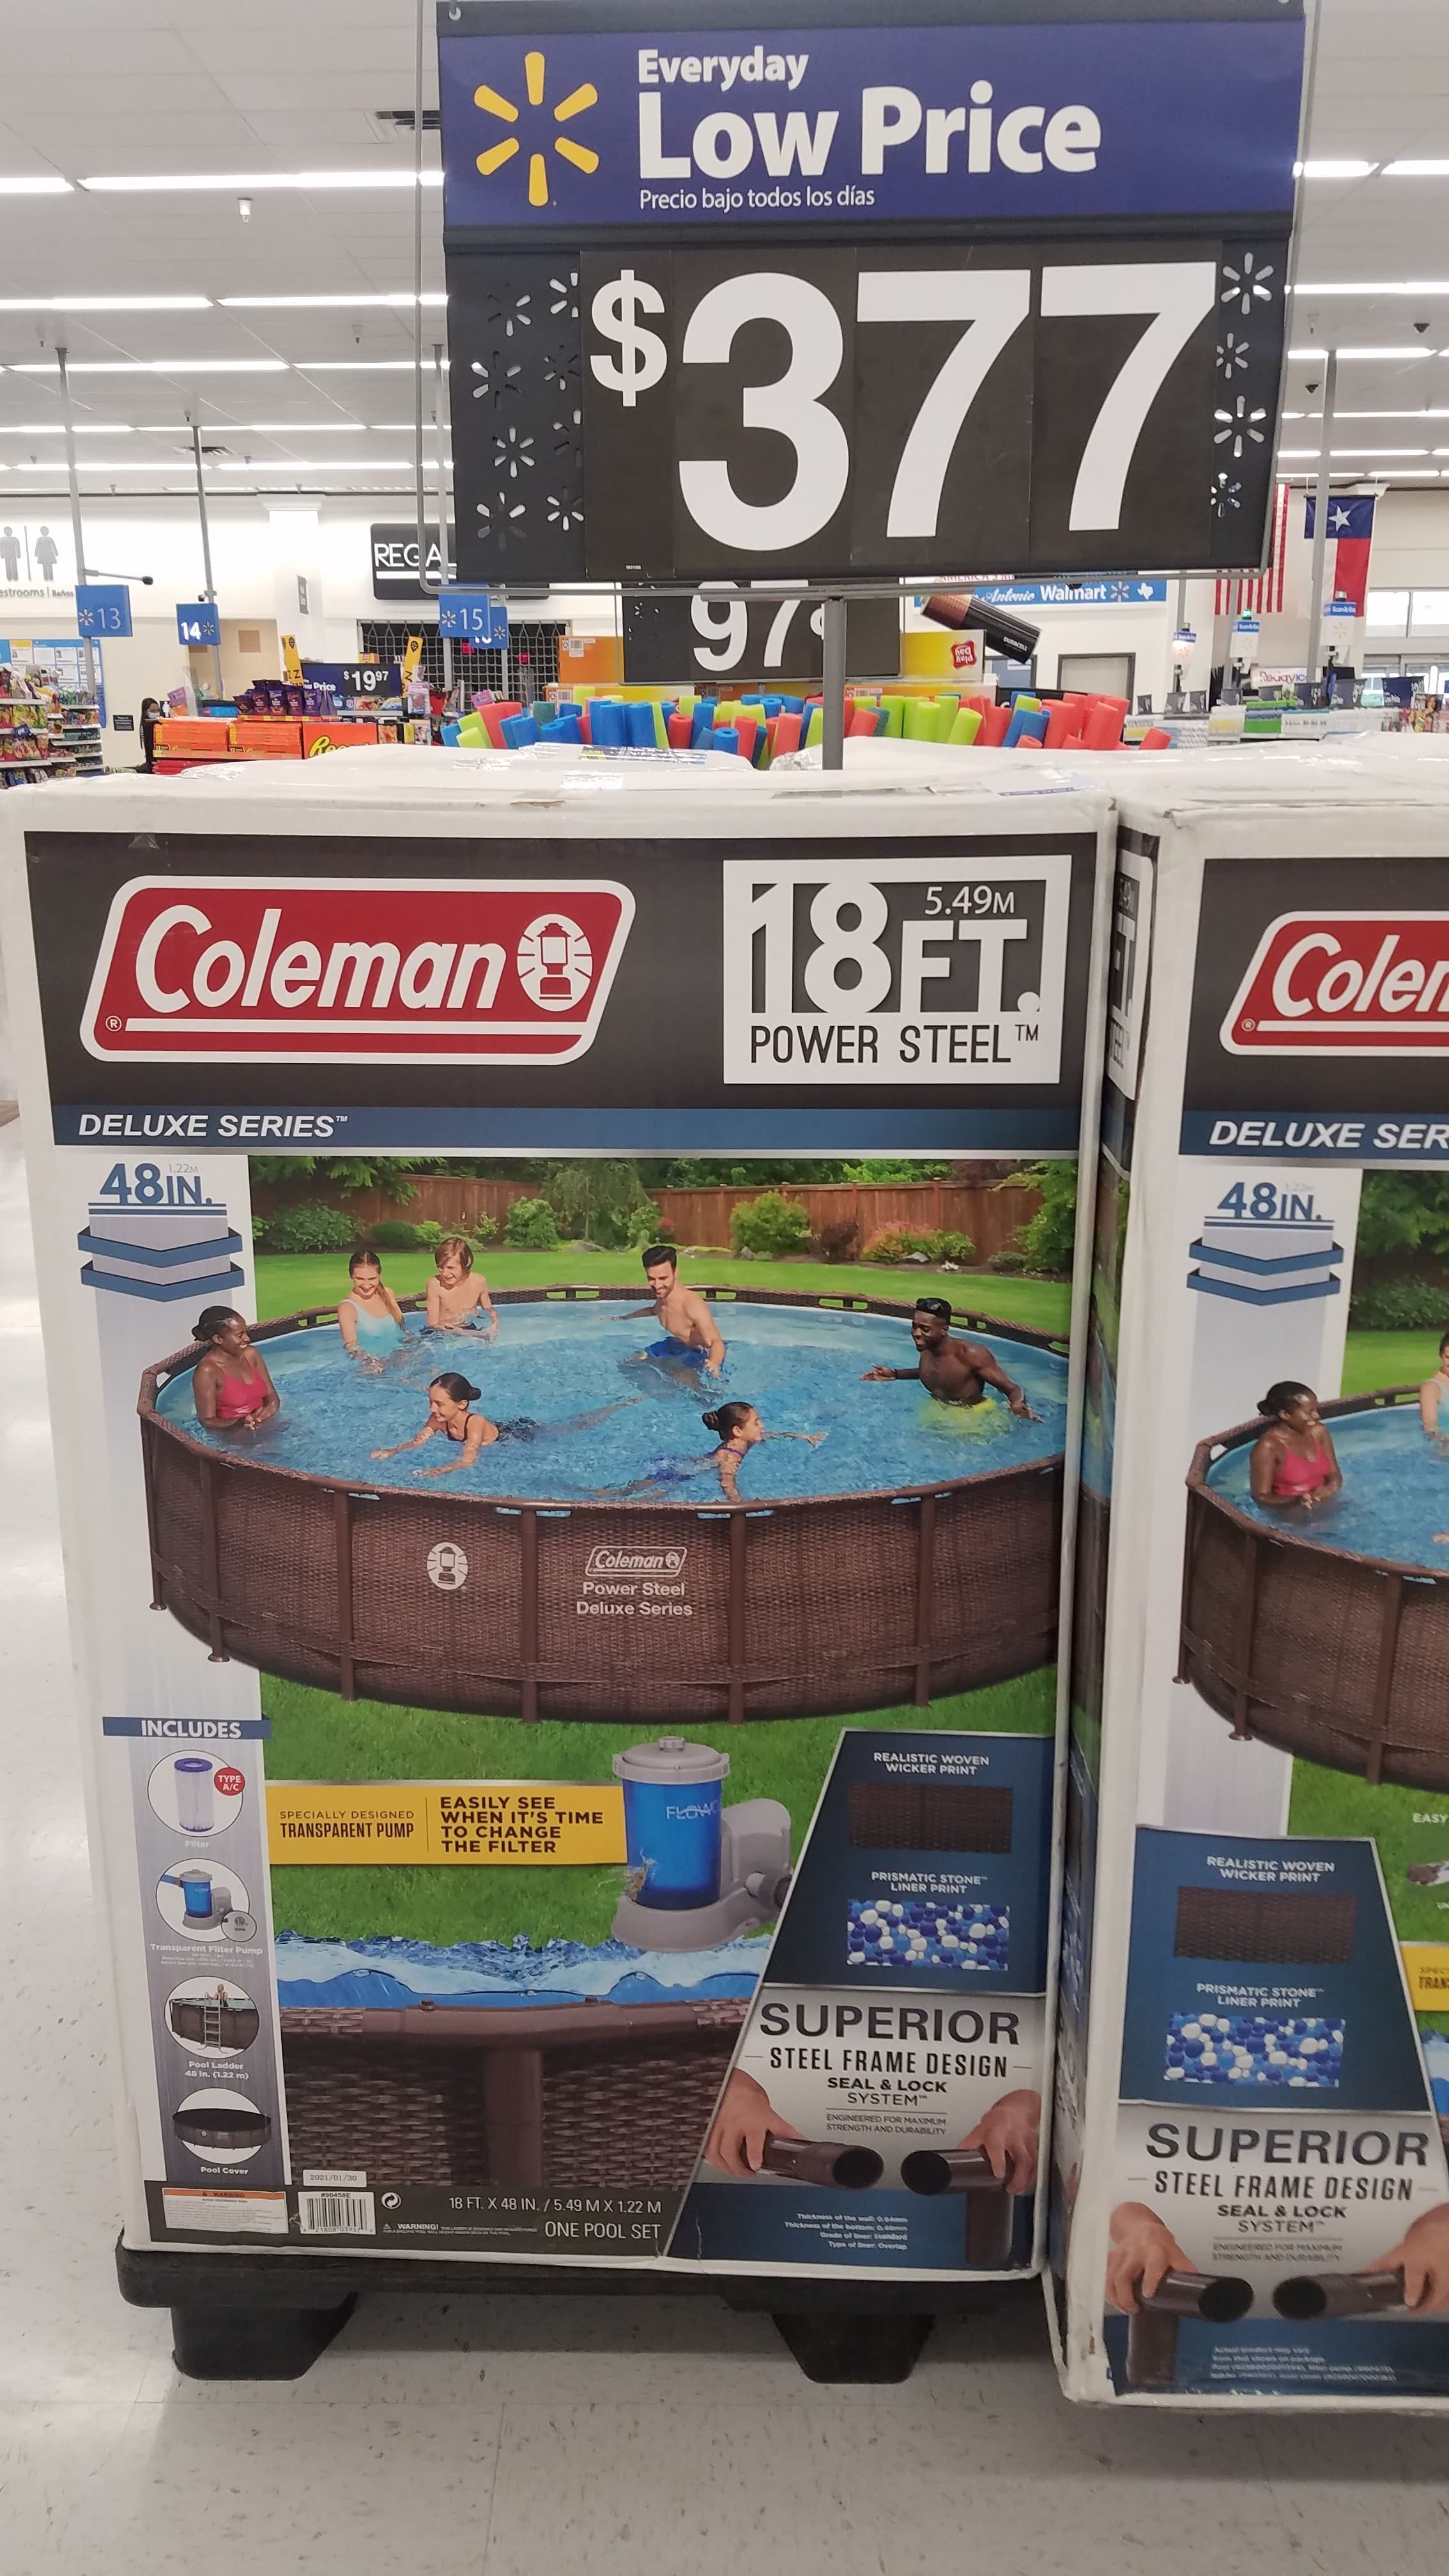 """Coleman 18'x48"""" Deluxe Series swimming pool $377 YMMV at WalMart"""